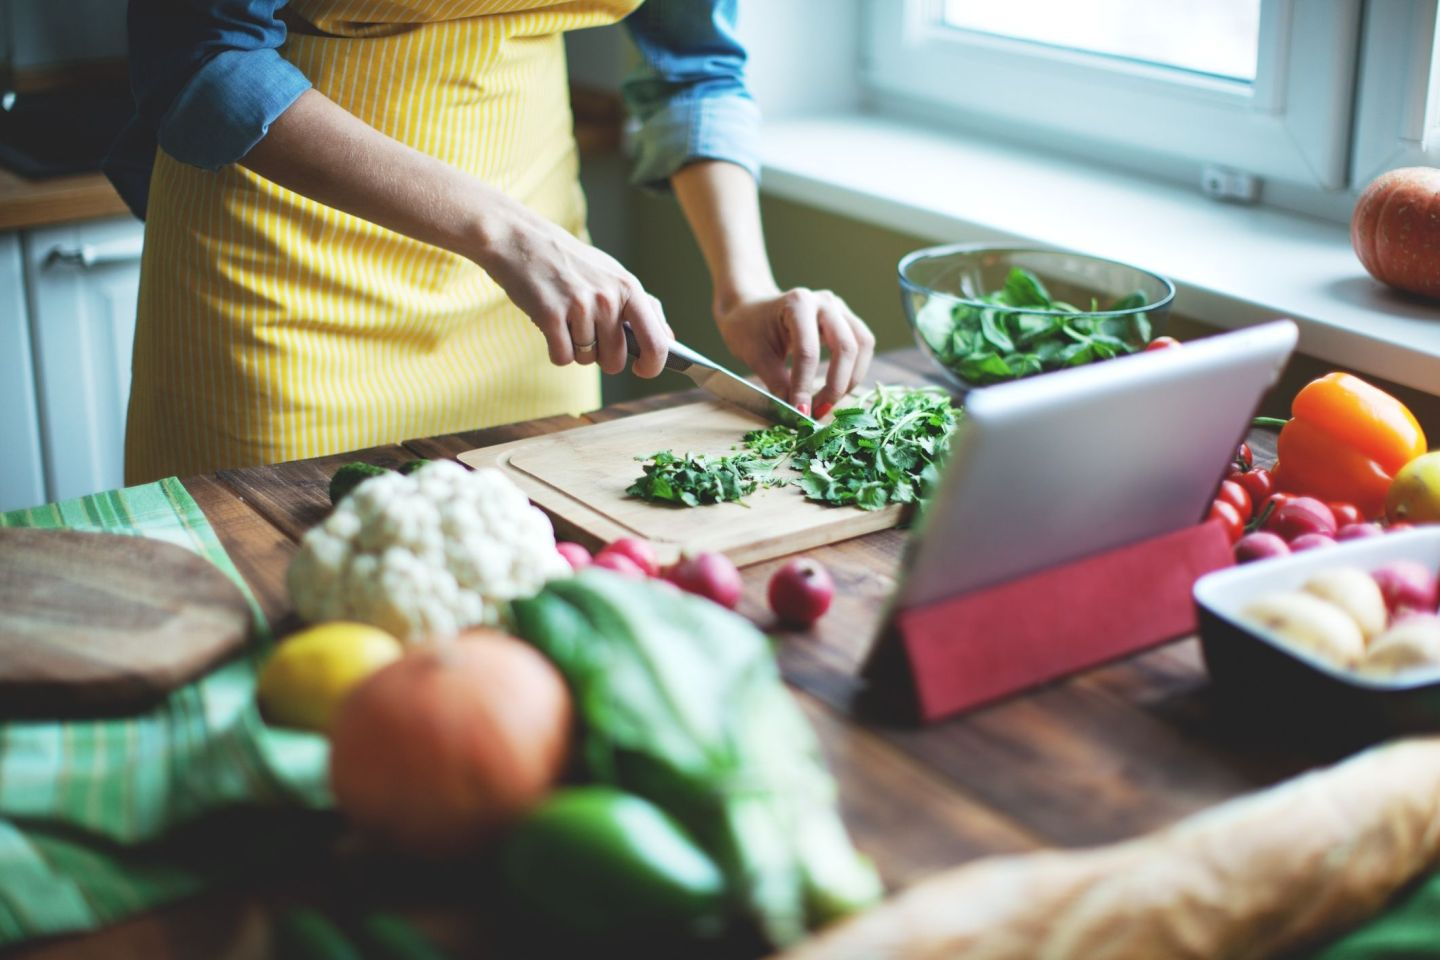 mothers day ideas during quarantine   virtual cooking class